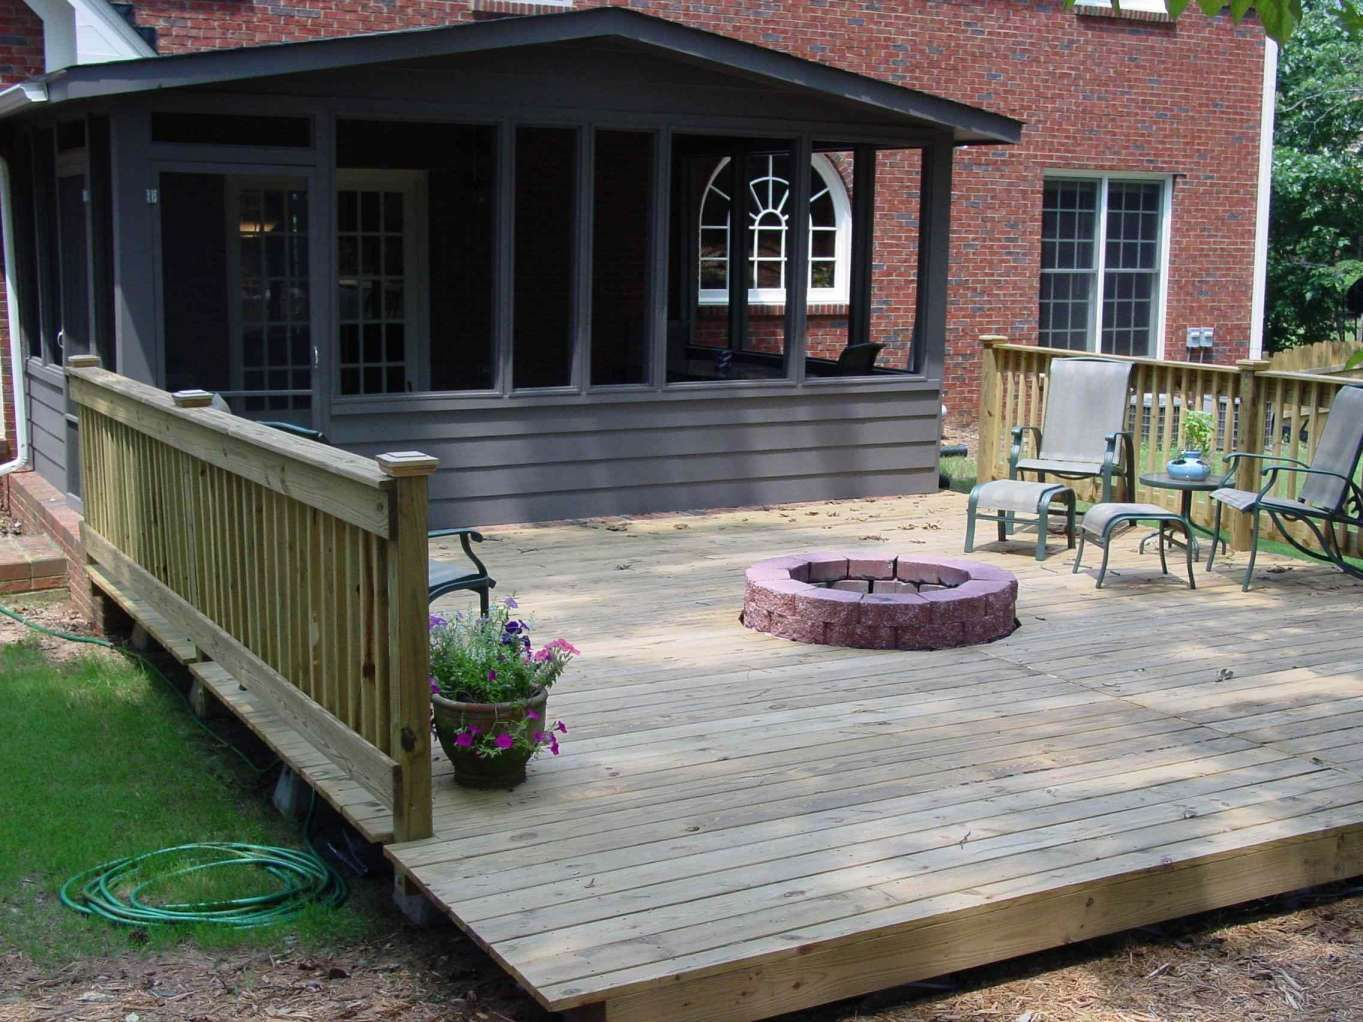 7 Romantic Deck With Fire Pit Gallery Deck Fire Pit Fire Pit On Wood Deck Outdoor Fire Pit Designs